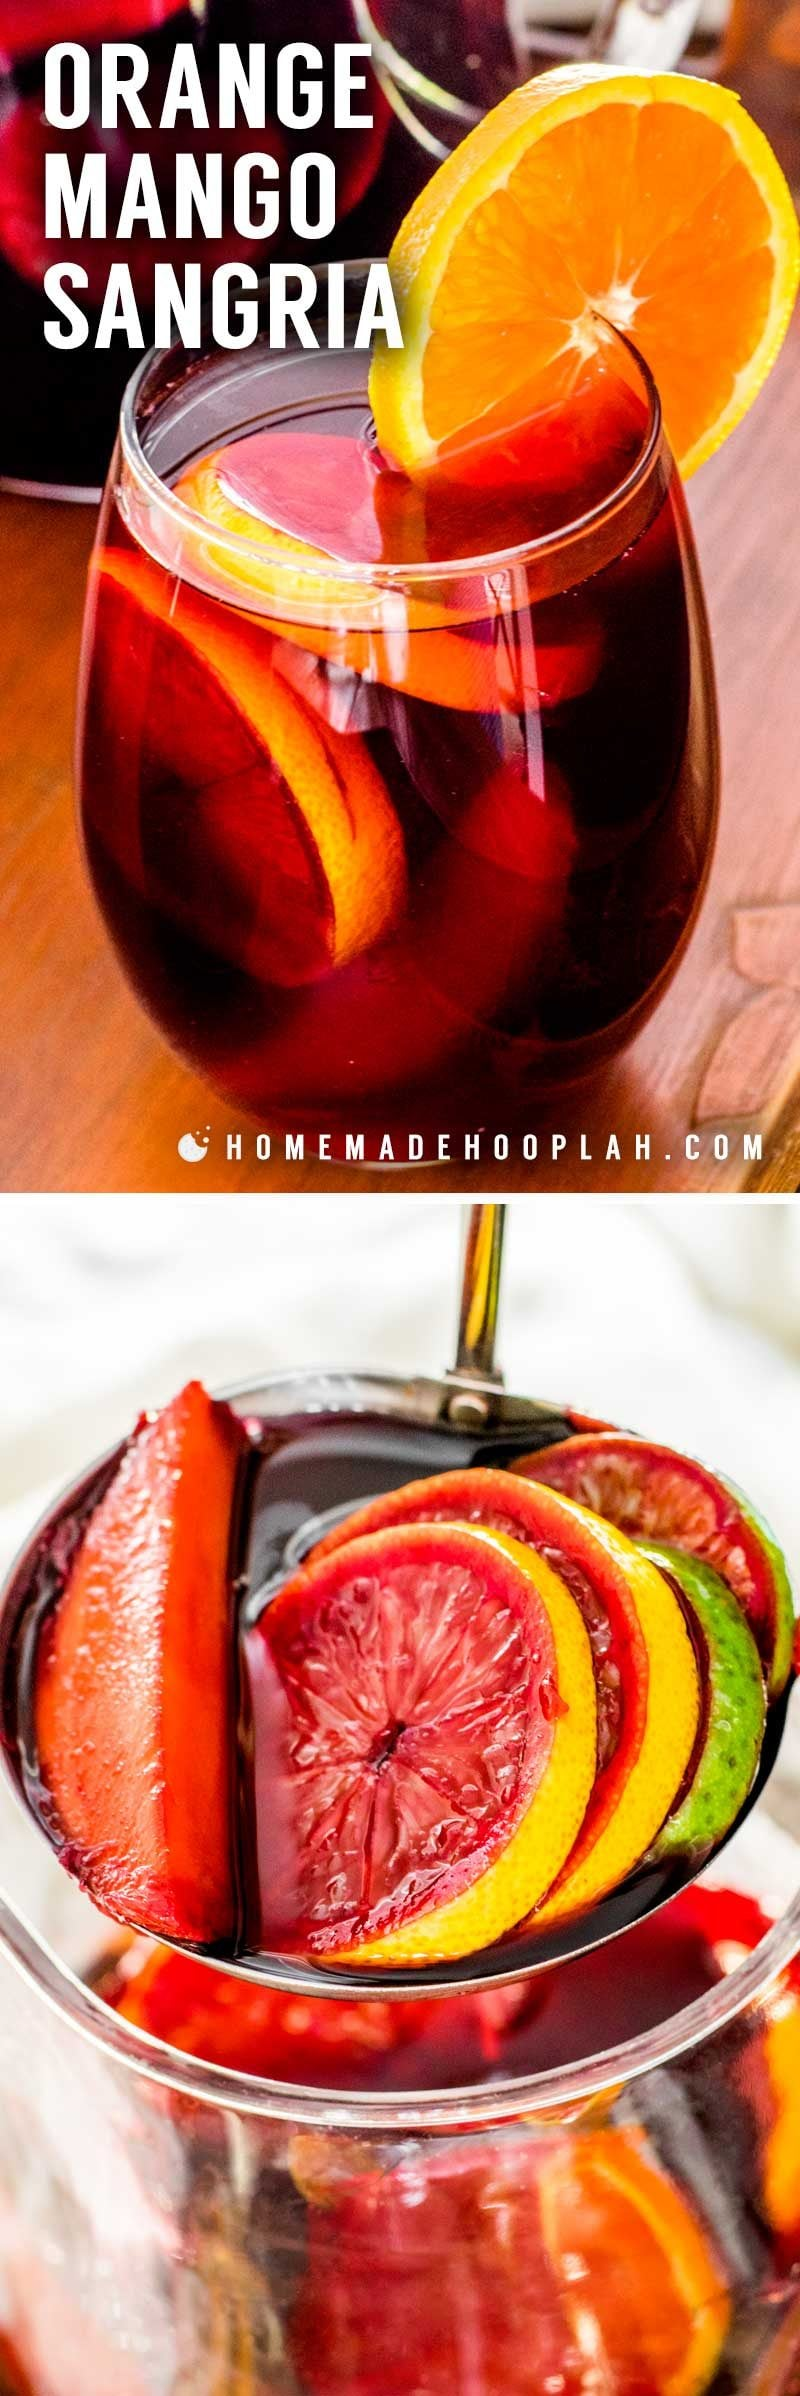 A cointreau sangria recipe with mango and citrus.